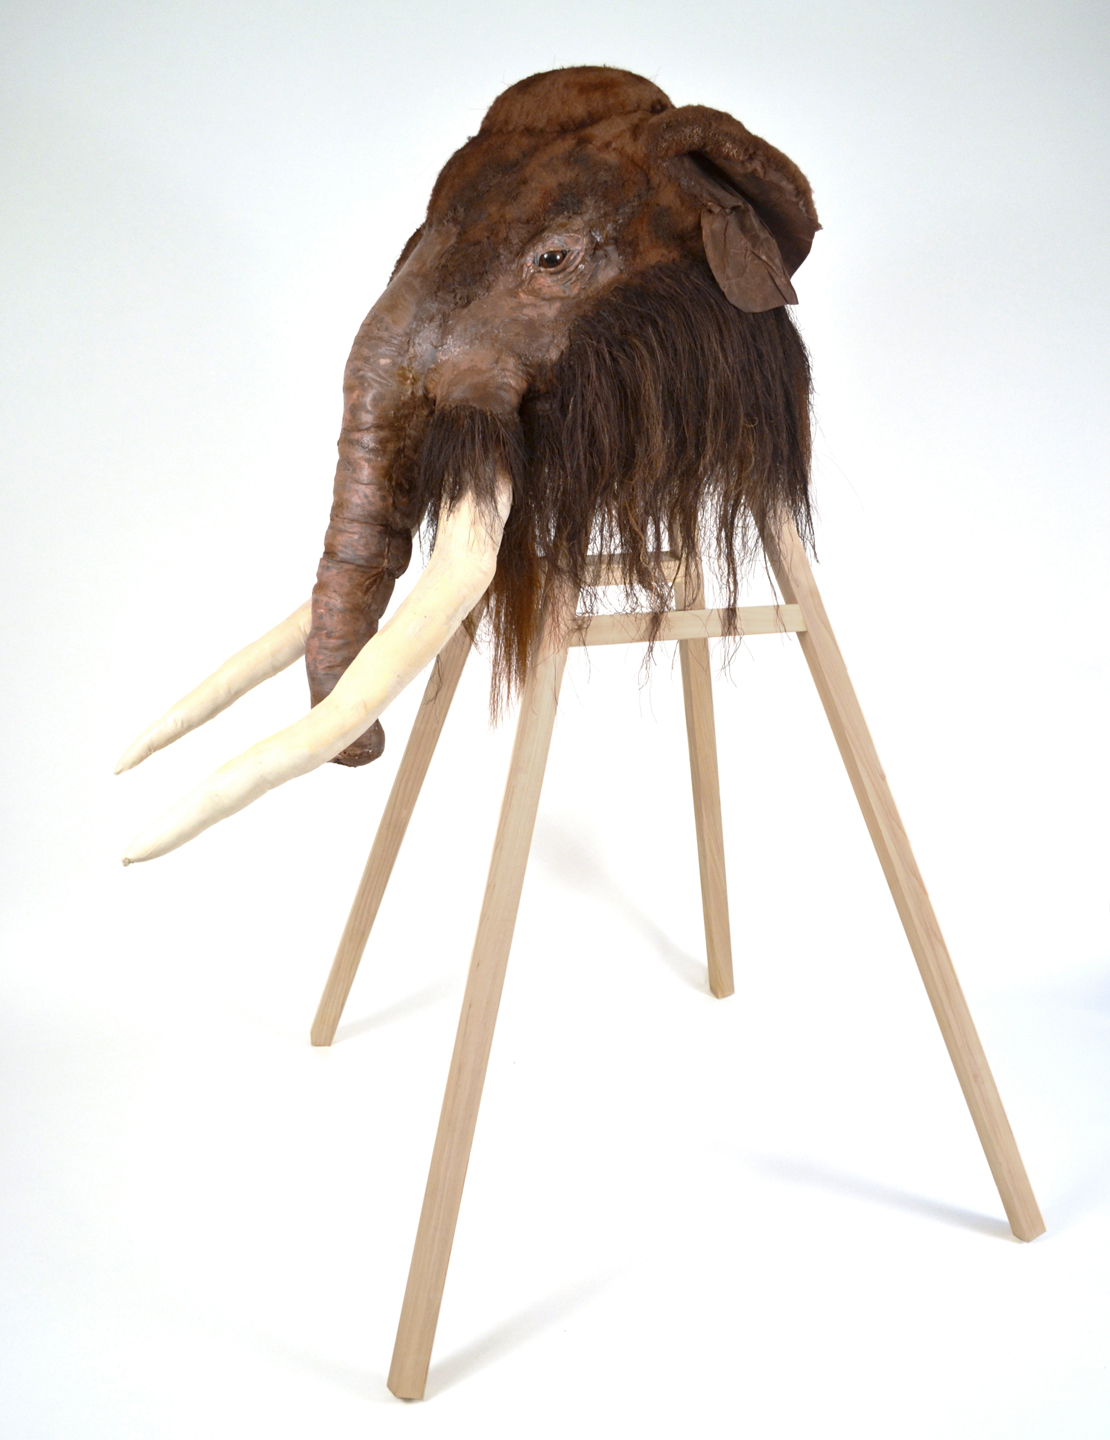 Mammuthus primigenius, Pleistocene Era Woolly Mammoth , 2014, Wood, fabric, acrylic, horsehair, and other materials, 64 x 50 x 43""